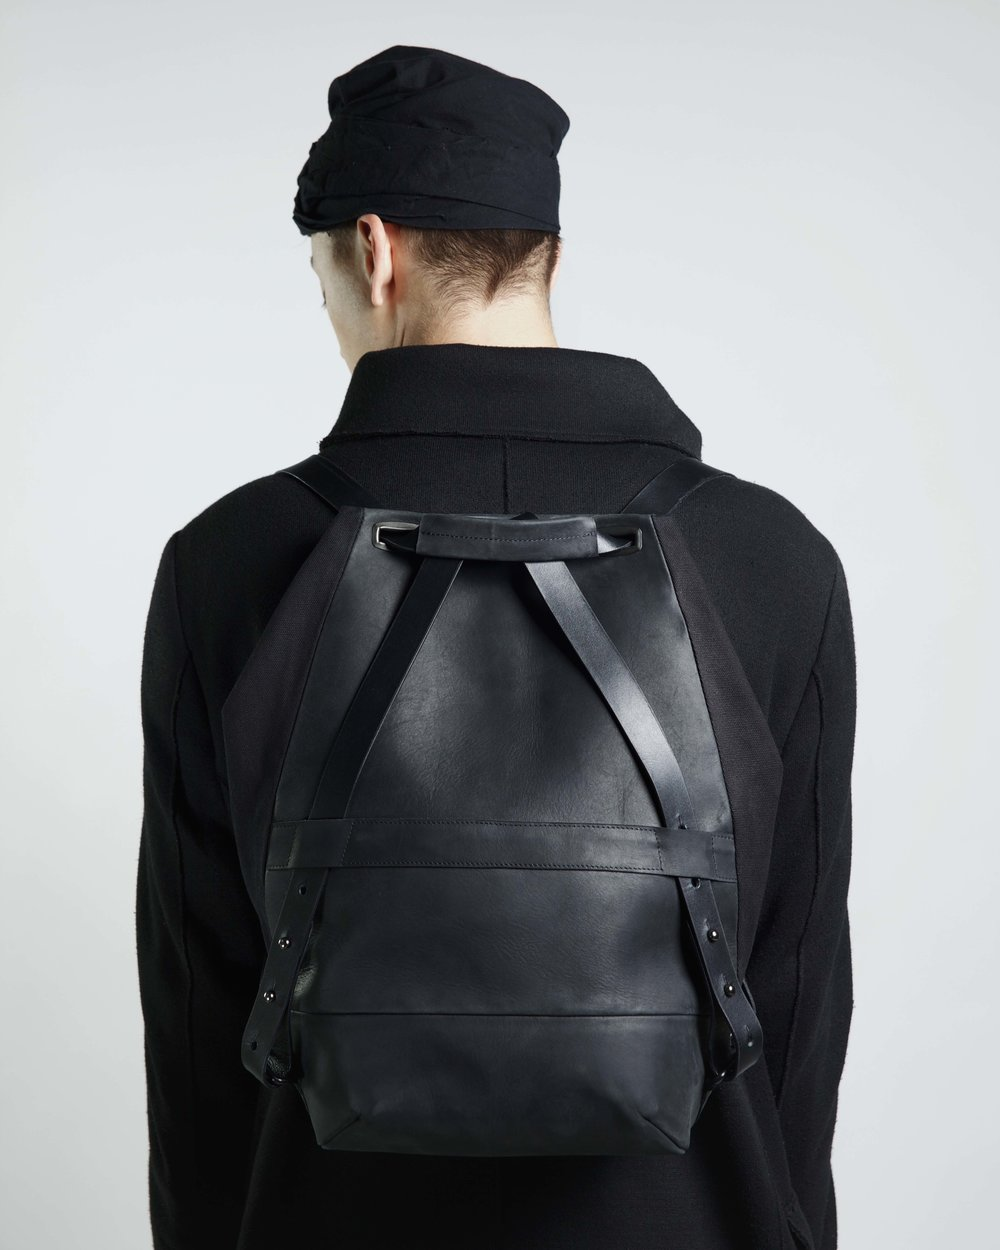 PAN 6 IN 1 backpack bag black from MDK - CHF 396 -